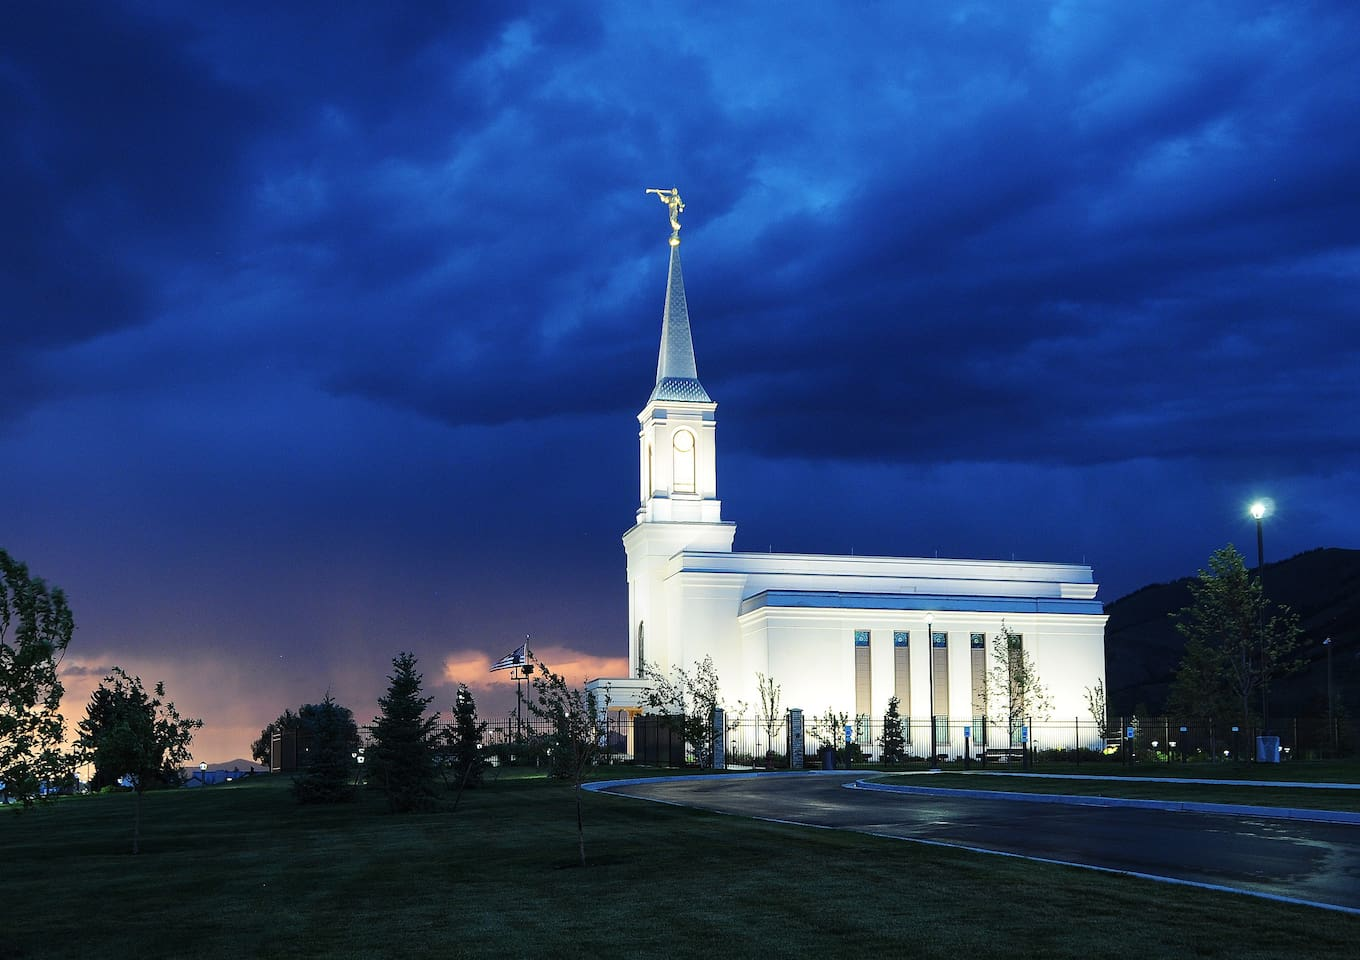 5 minutes from the LDS Temple